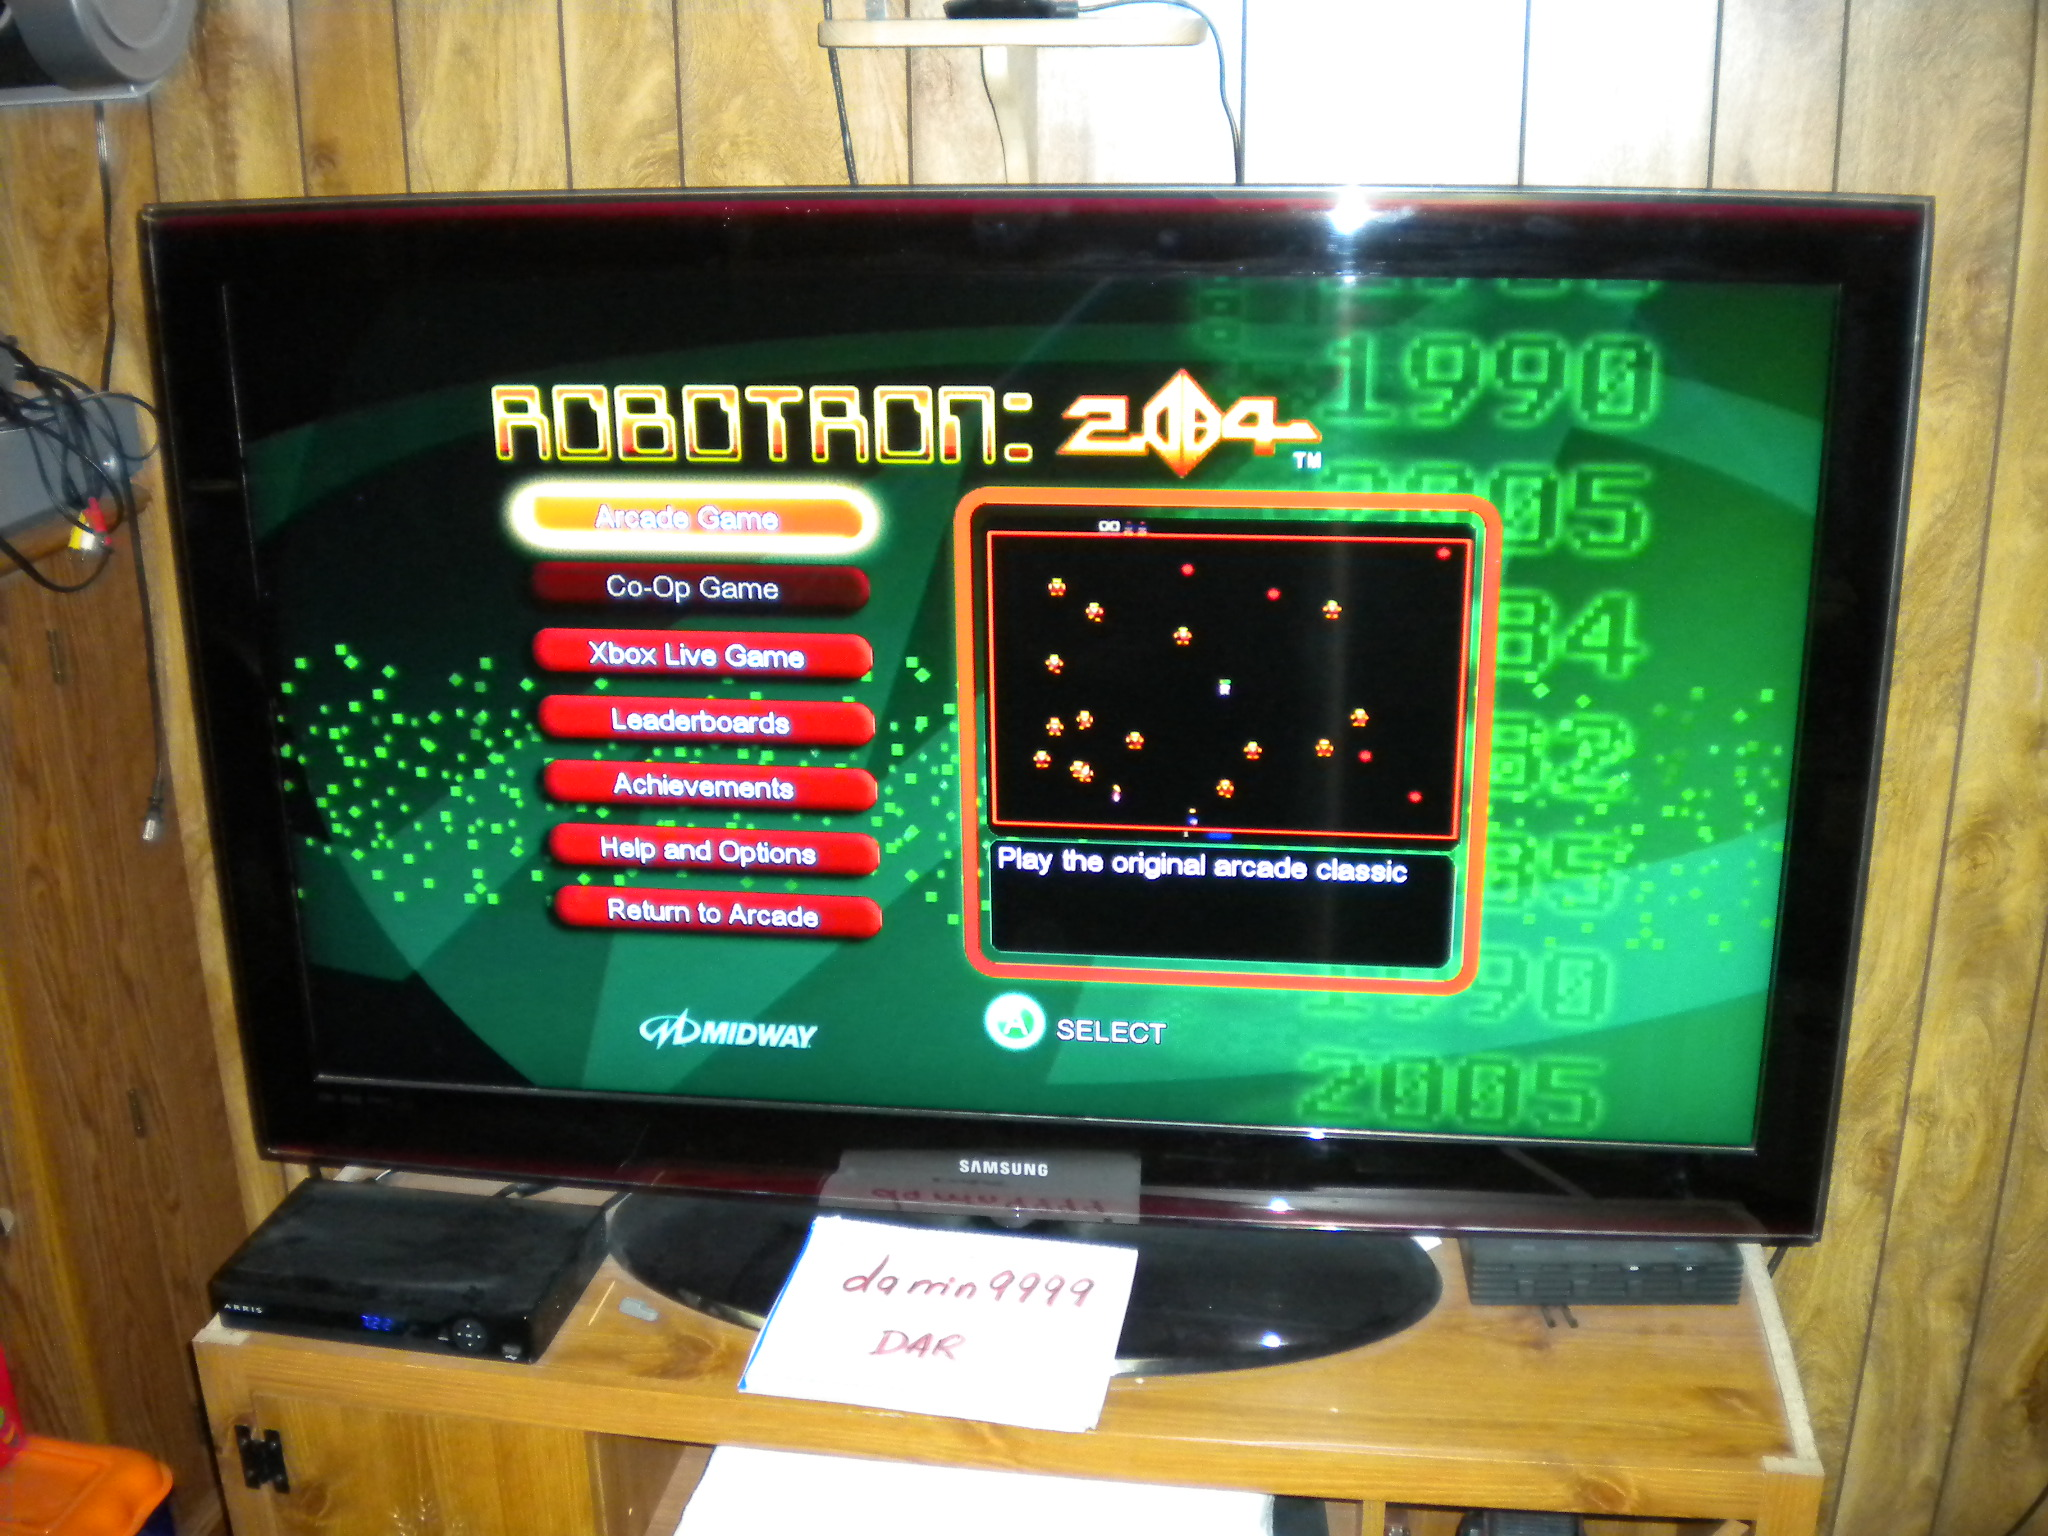 Robotron 2084 20,825 points